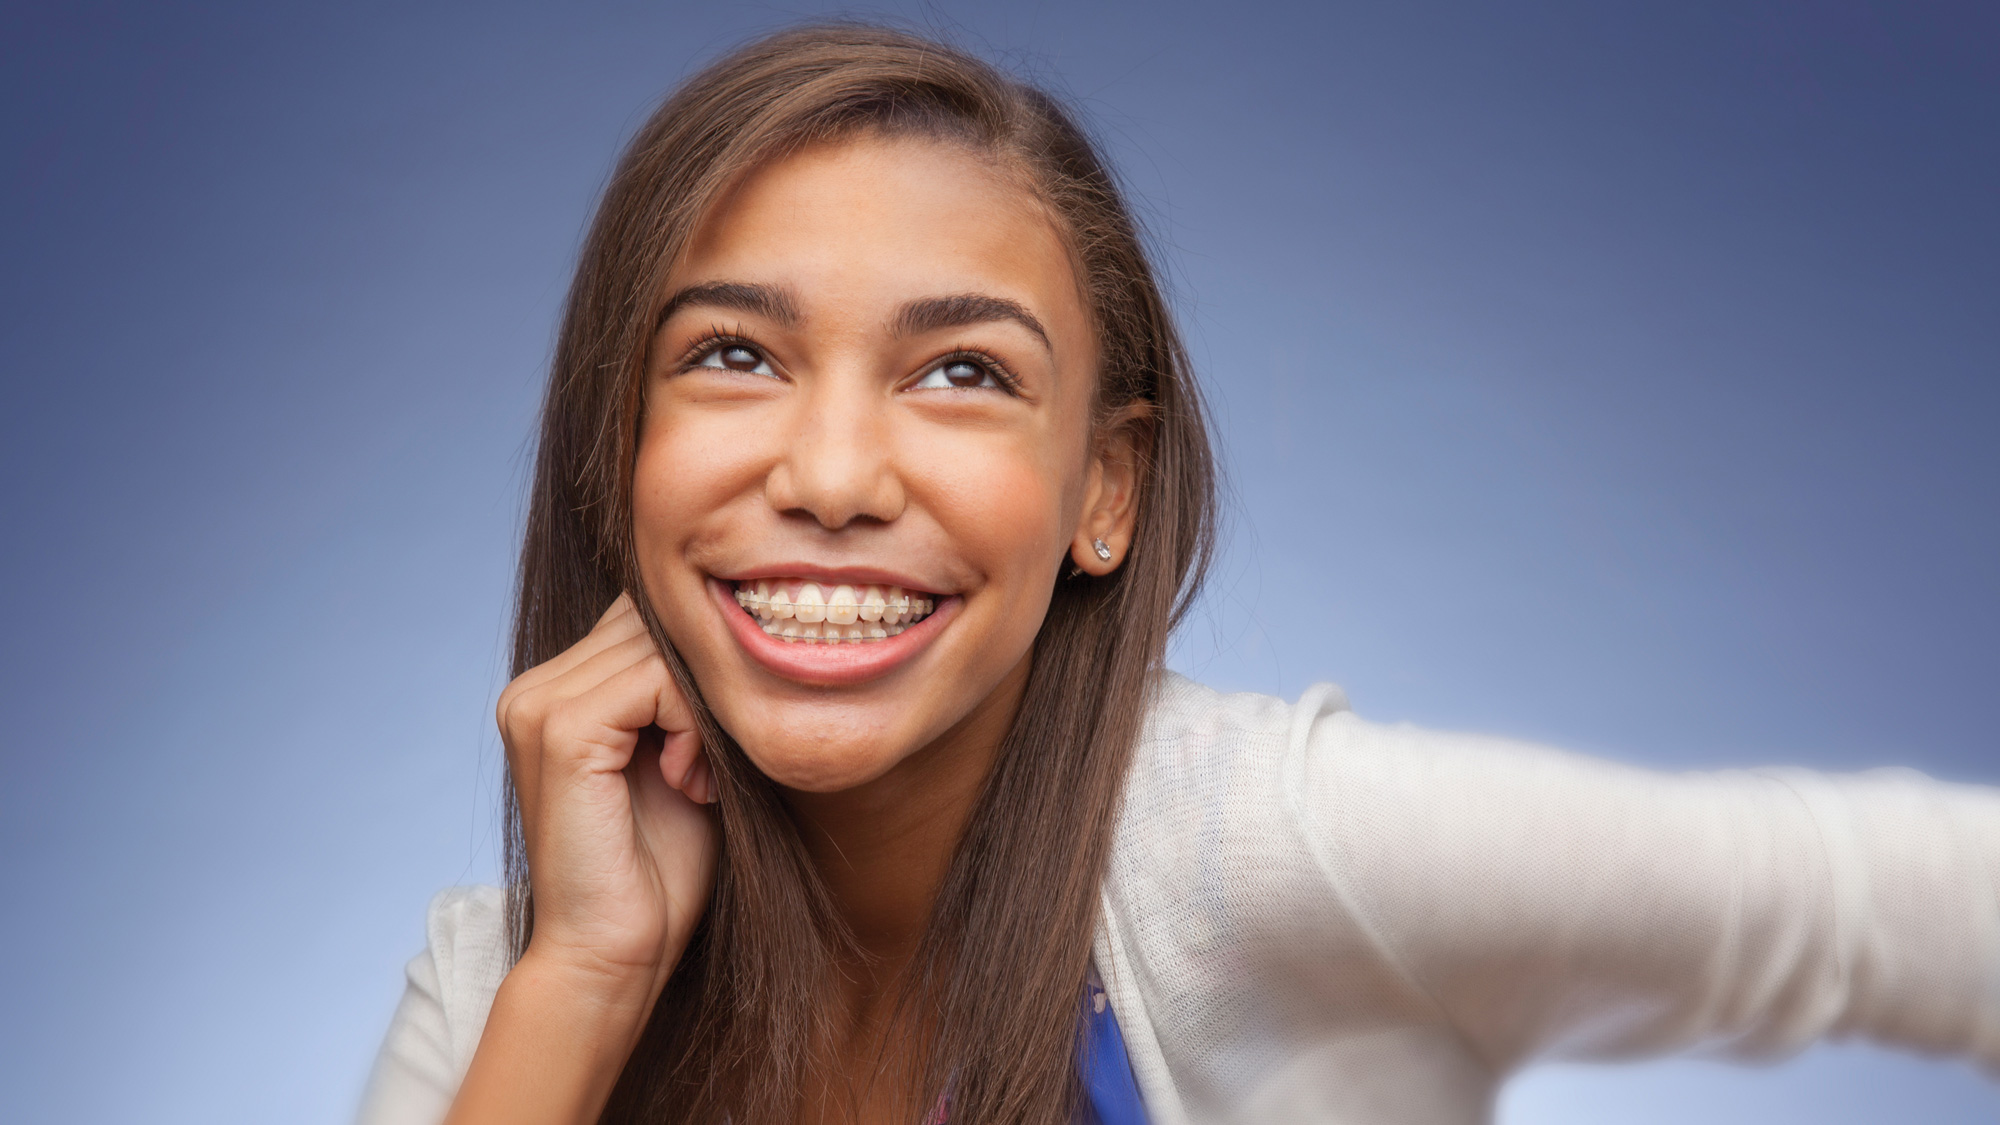 A young woman smiling while wearing braces. She's looking above the camera.